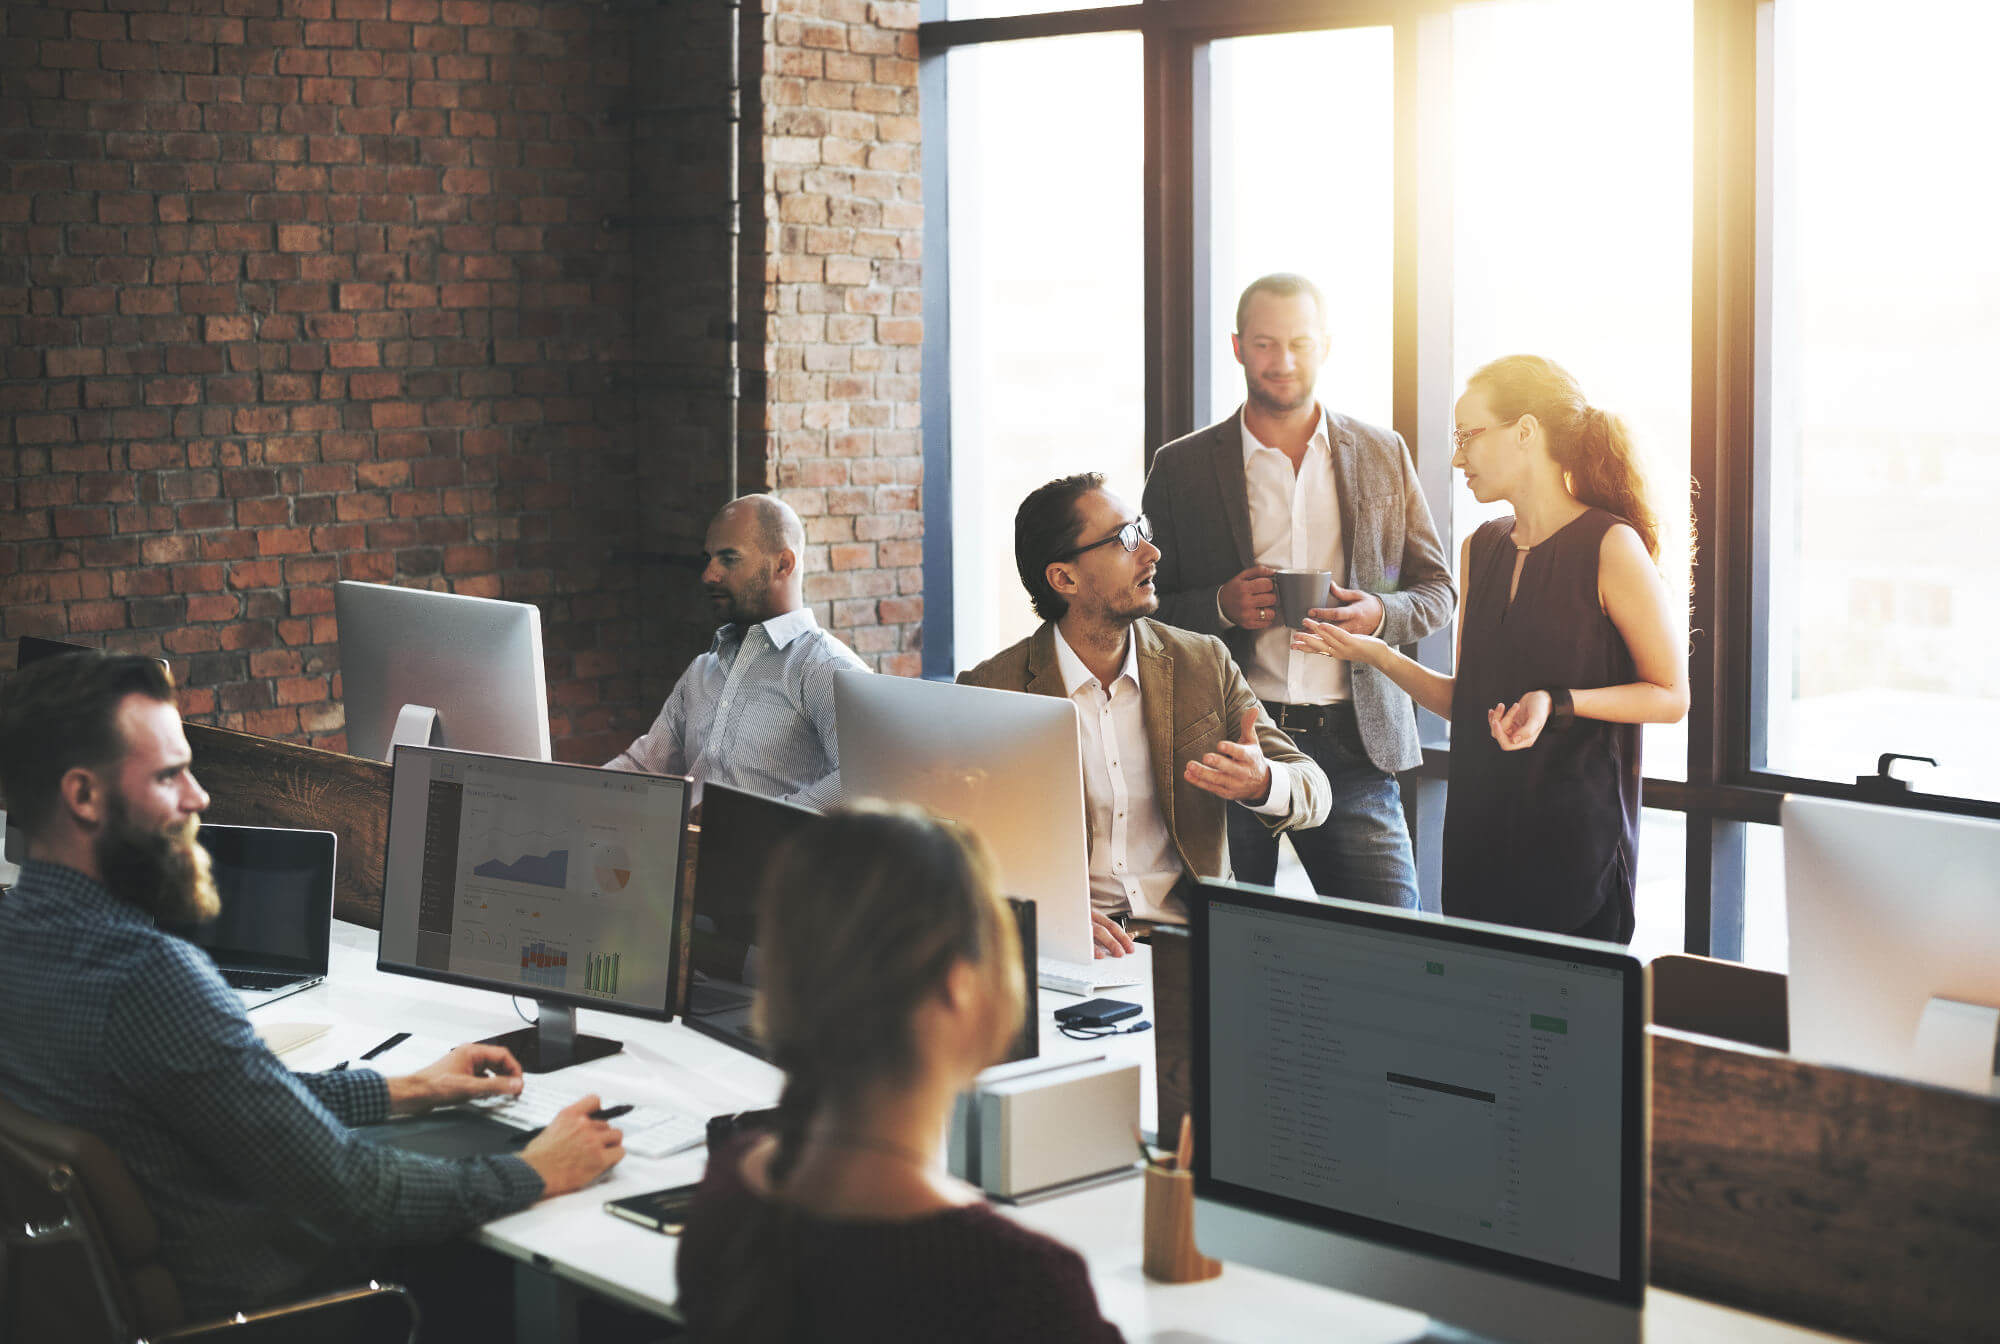 office-business-team-work-shutterstock_389027974-small